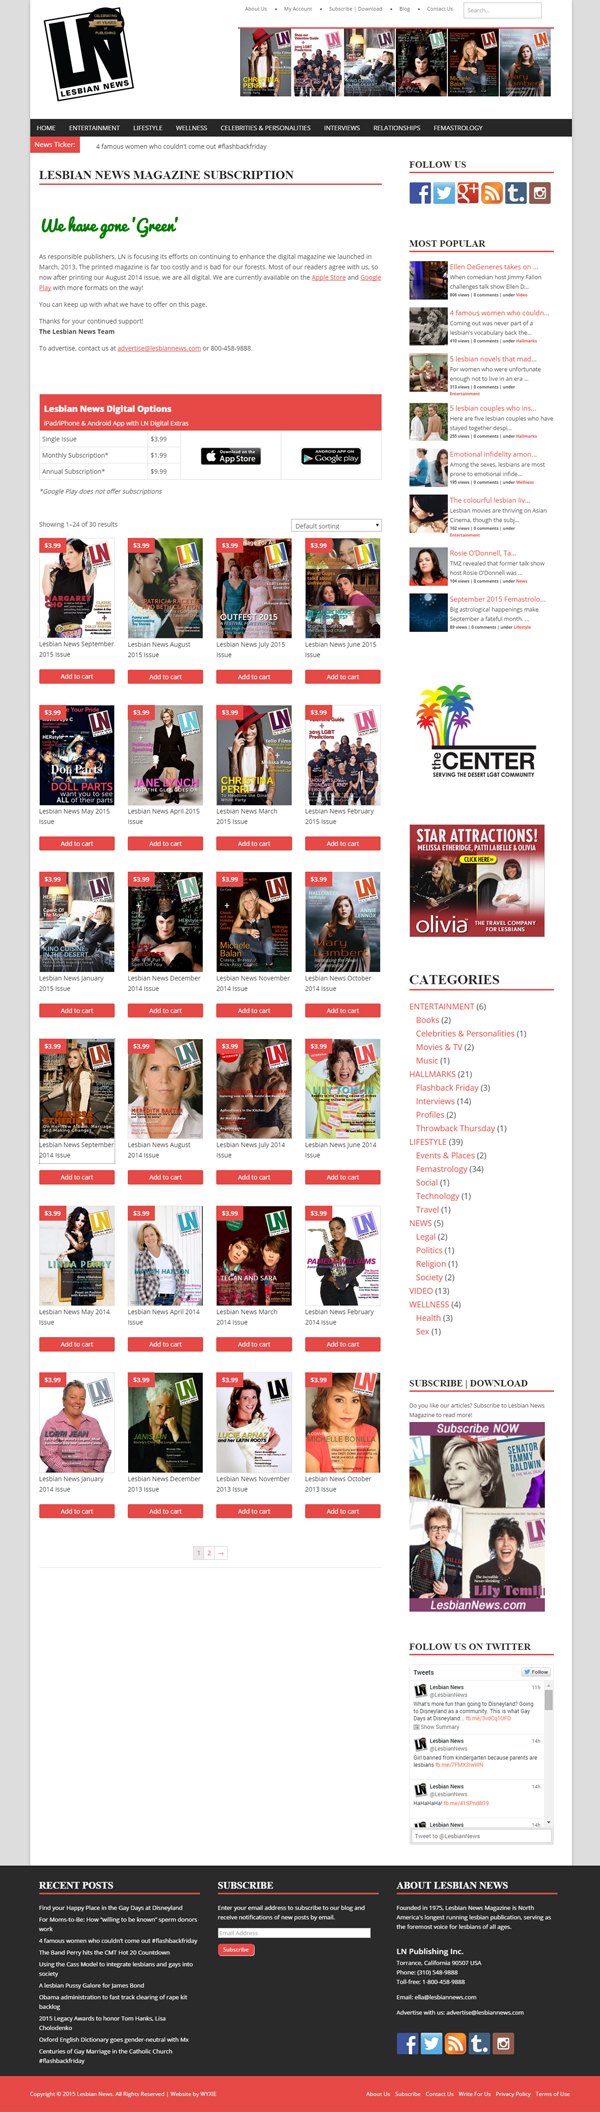 Lesbian News Magazine Website - Shop